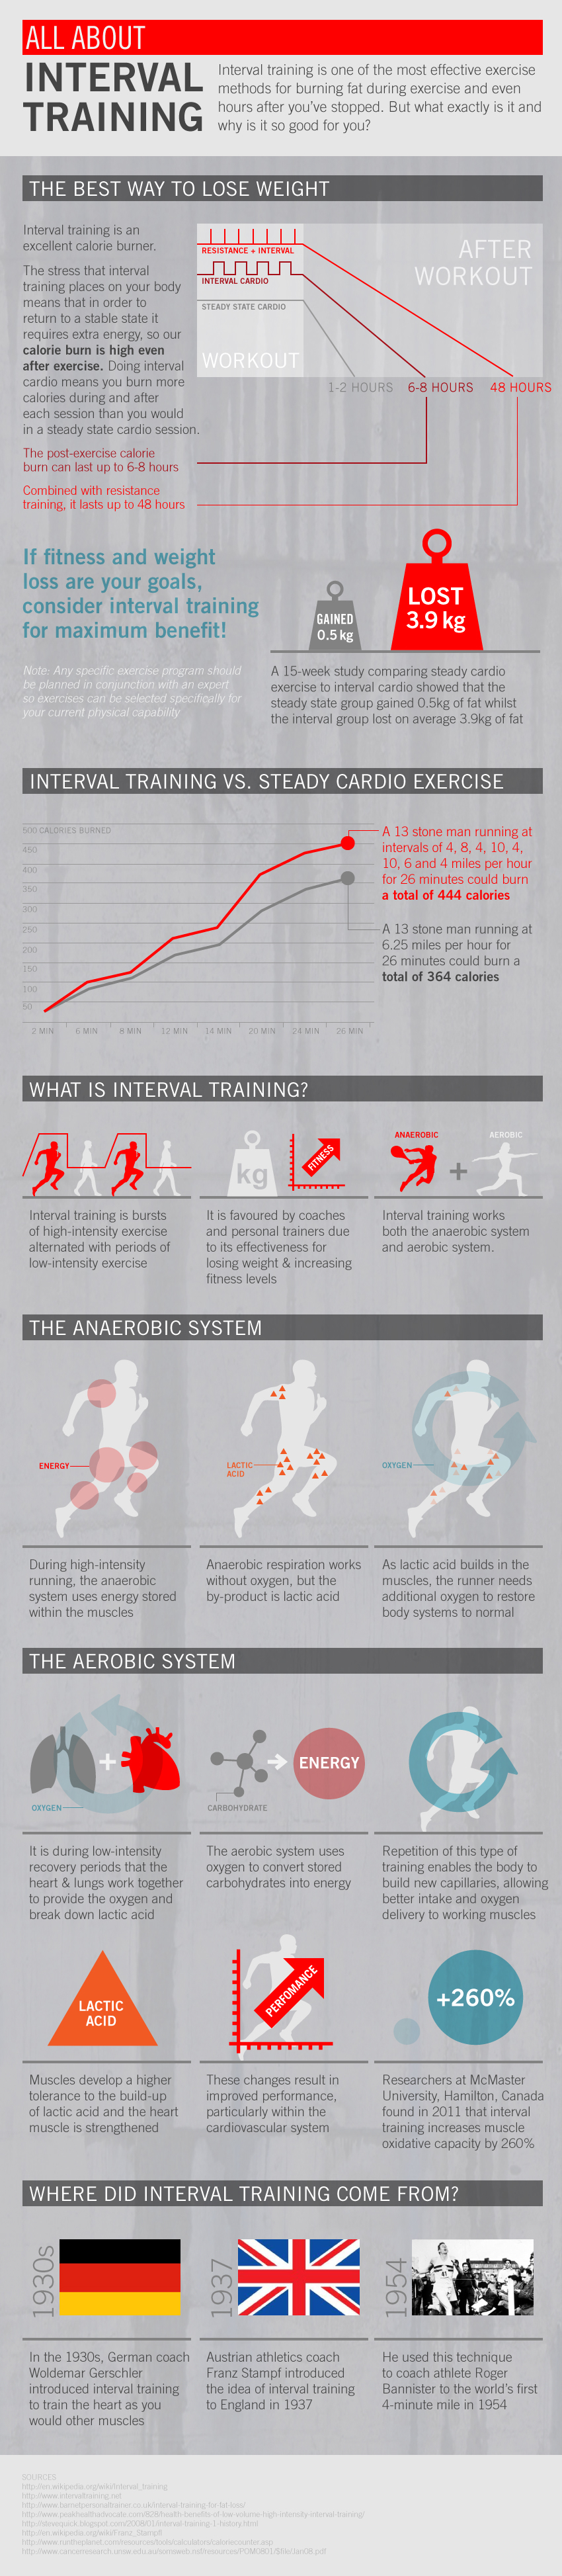 Interval Training Infographic